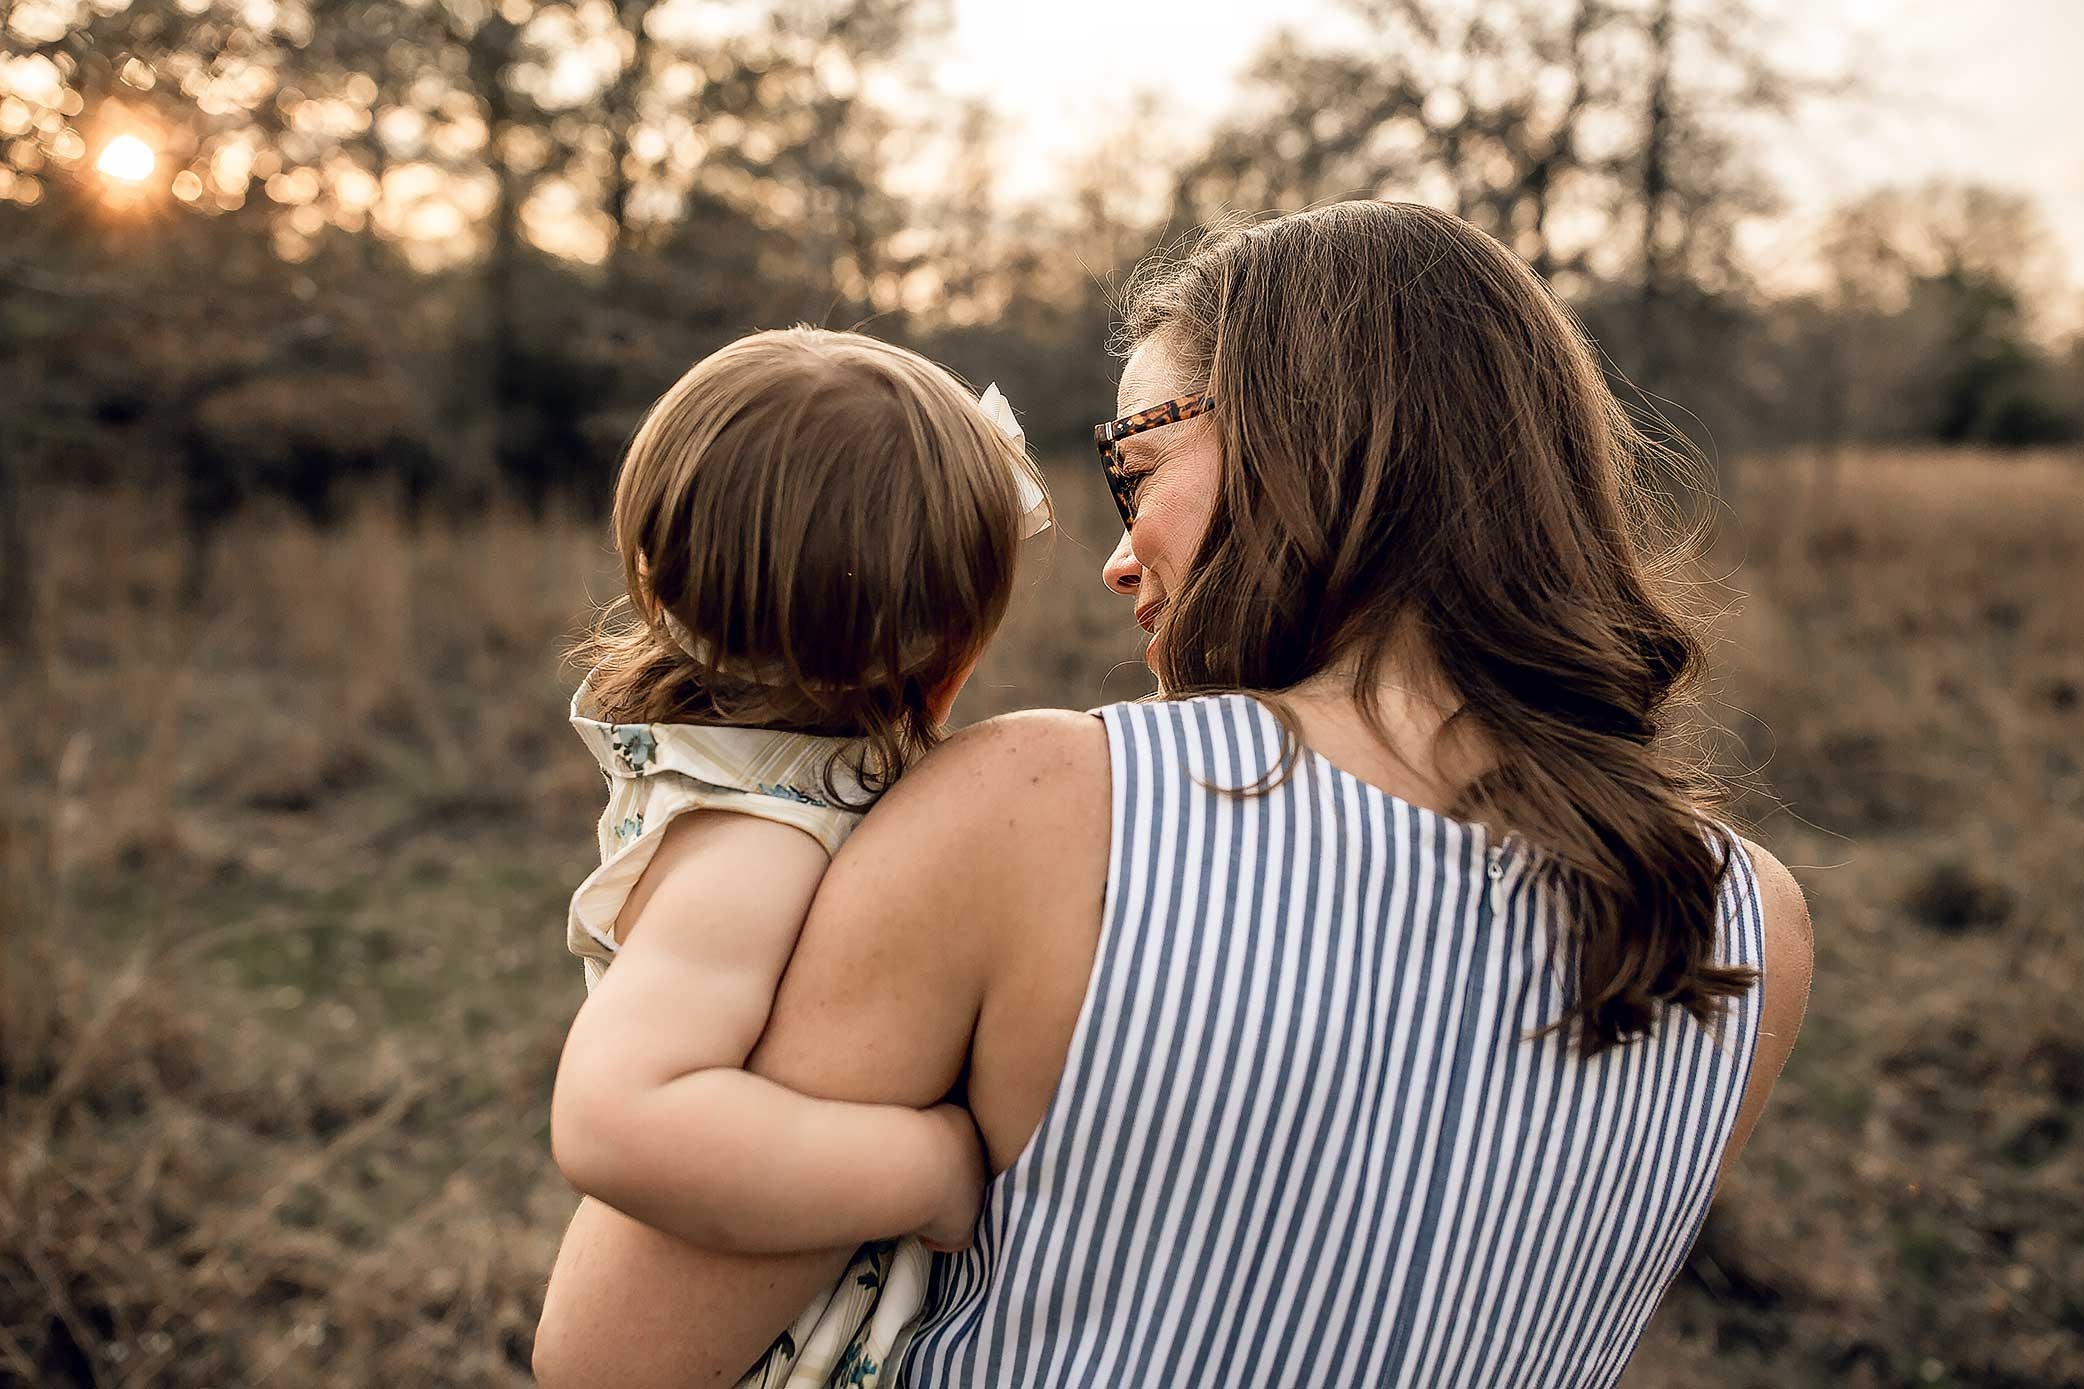 shelby-schiller-photography-lifestyle-family-session-with-3-kids-spring-2019-green-blue-yellow-college-station-44.jpg